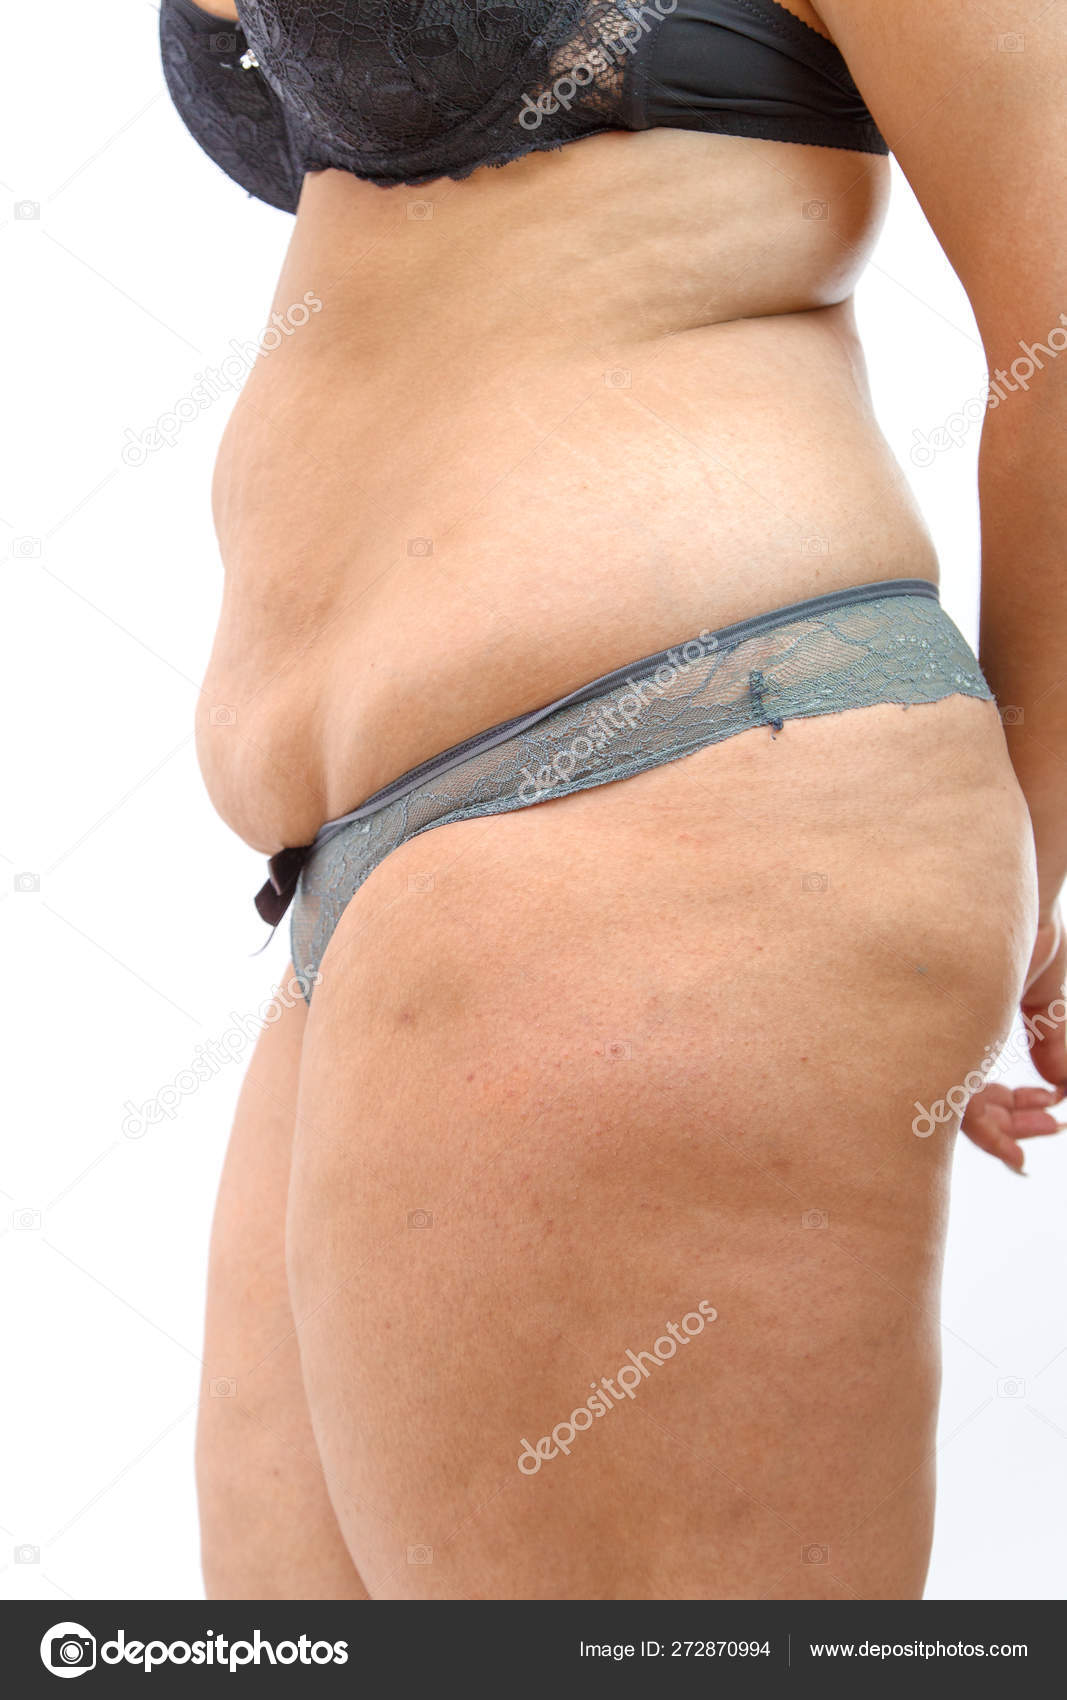 Big Belly And Cellulite Fat Legs Of Overweighted Woman Isolated Stock Photo C Ajphotos 272870994